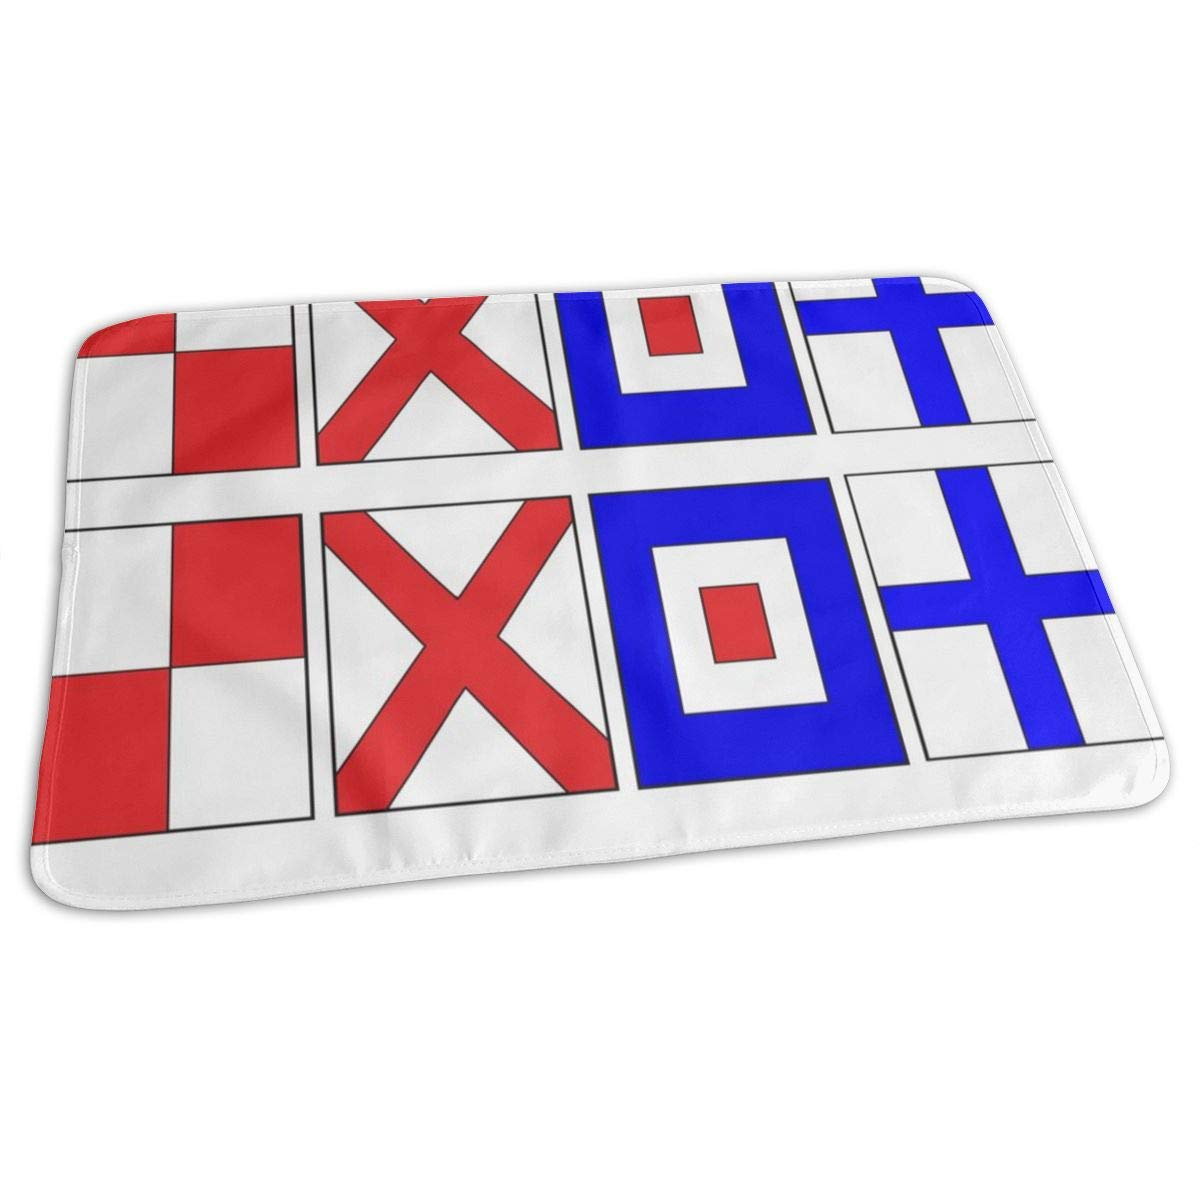 Letter U V W X (67) Baby Portable Reusable Changing Pad Mat 19.7x27.5 inch